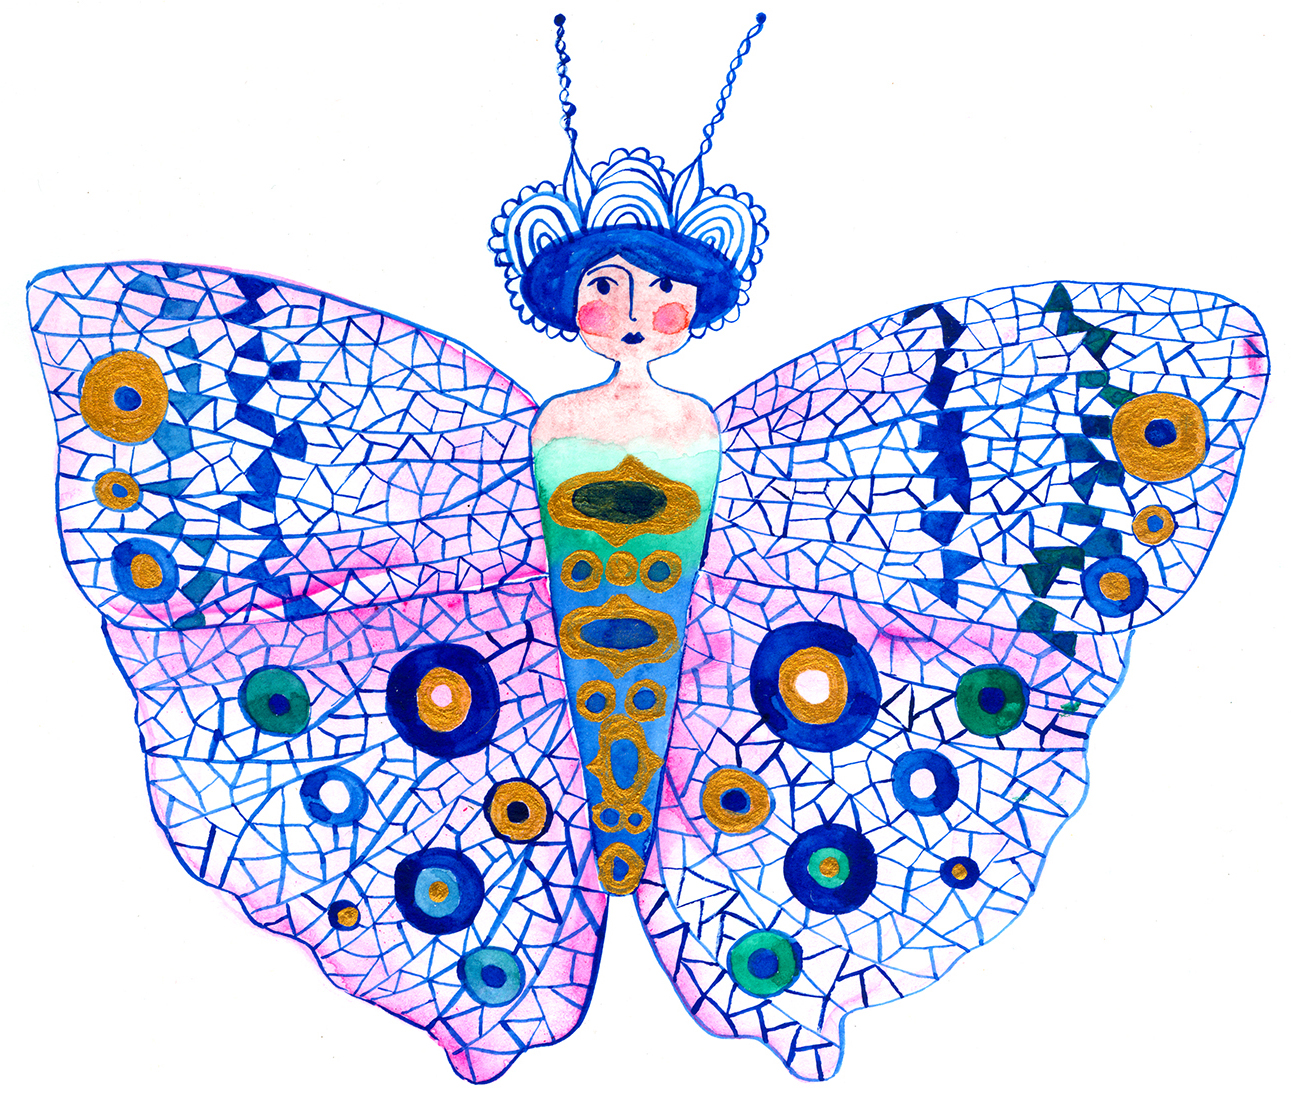 butterfly by Marenthe.jpg